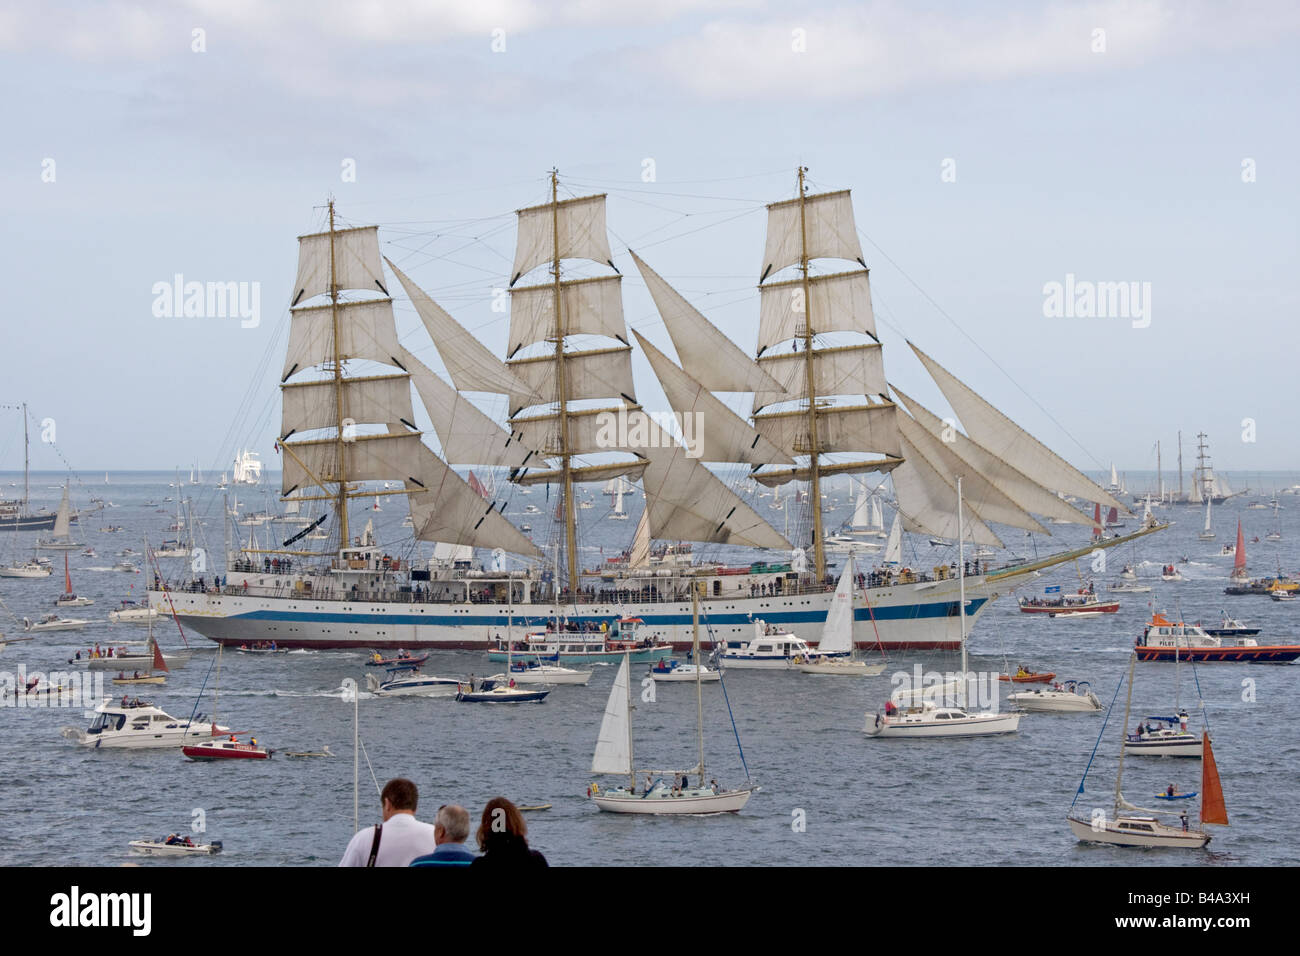 Mir square rigged training ship Funchal 500 Tall Ships Regatta Pendennis Point Falmouth Cornwall UK - Stock Image